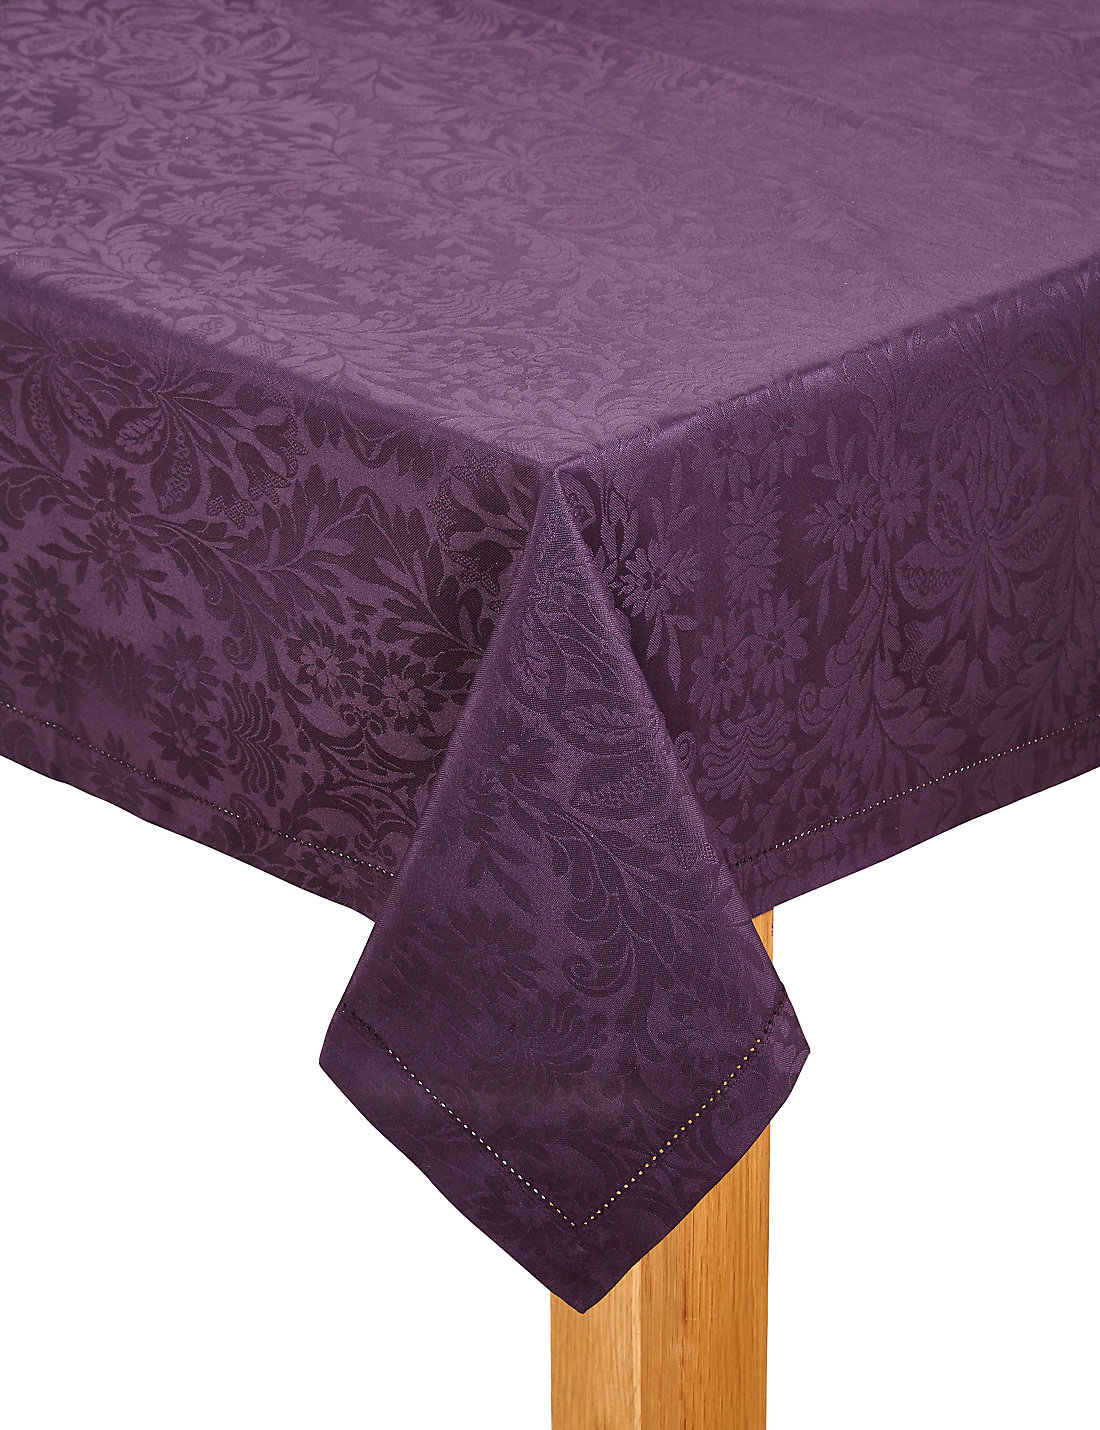 Plum Damask Tablecloth